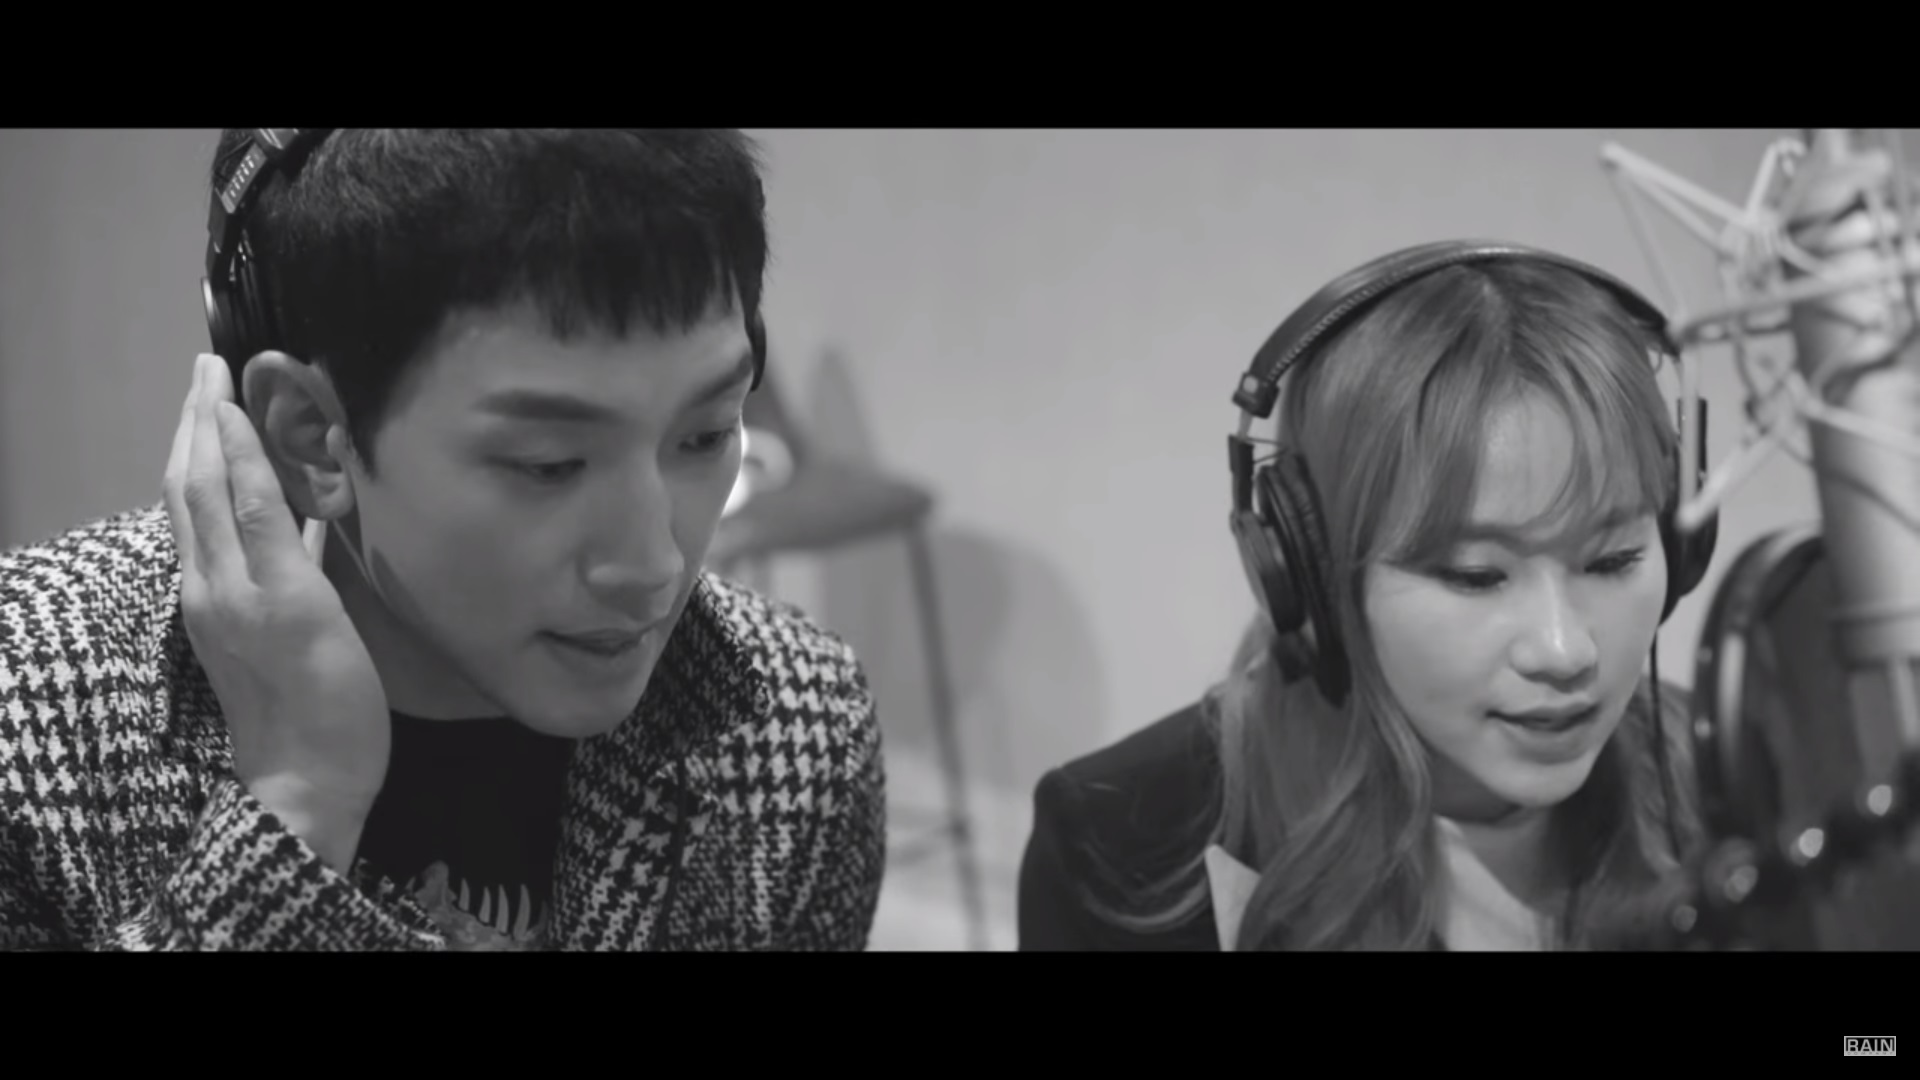 Rain Kolaborasi Bareng Jo Hyun Ah Urban Zakapa di MV Pra-Rilis 'Let's Break Up Today'